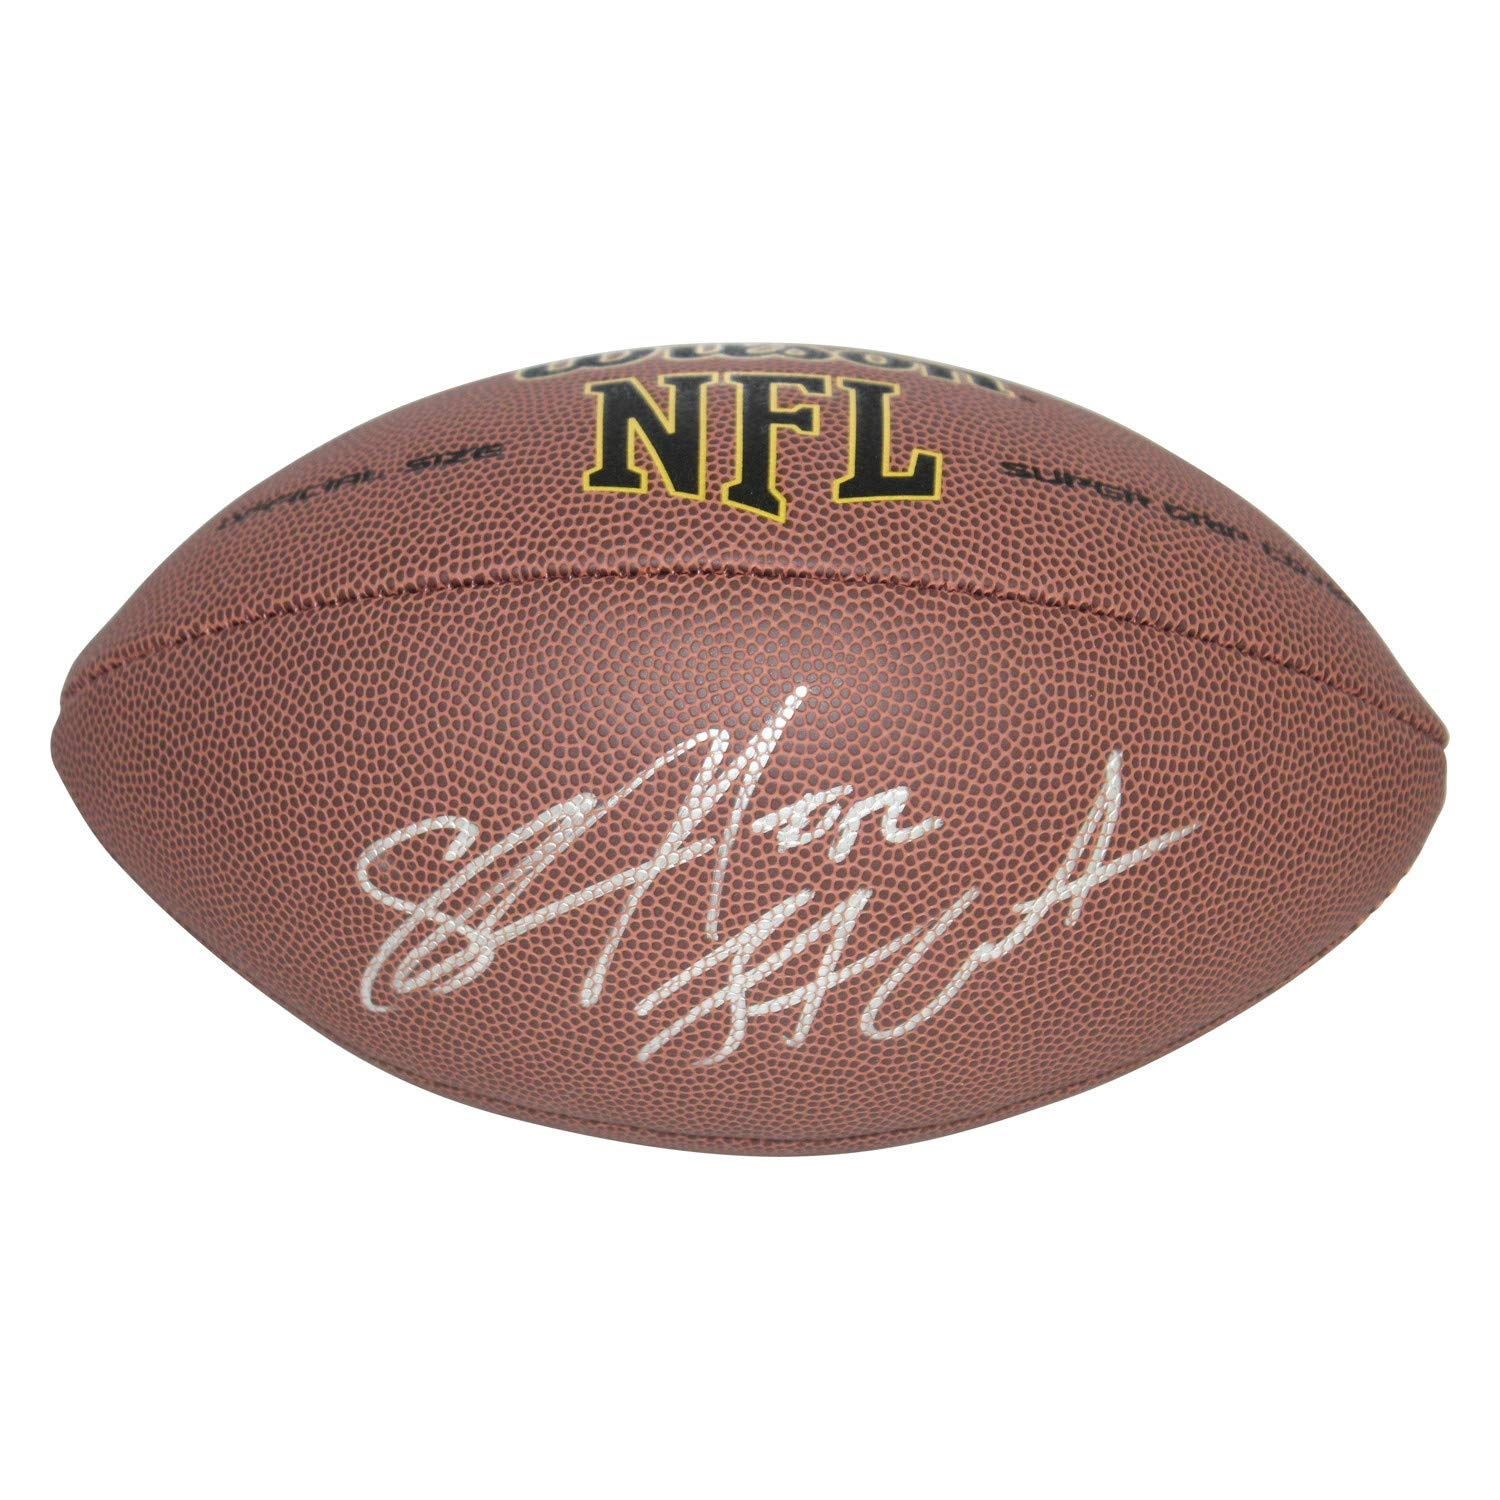 Shawne Merriman Los Angeles Chargers Autographed Signed Wilson NFL Super Grip Football - Certified Authentic